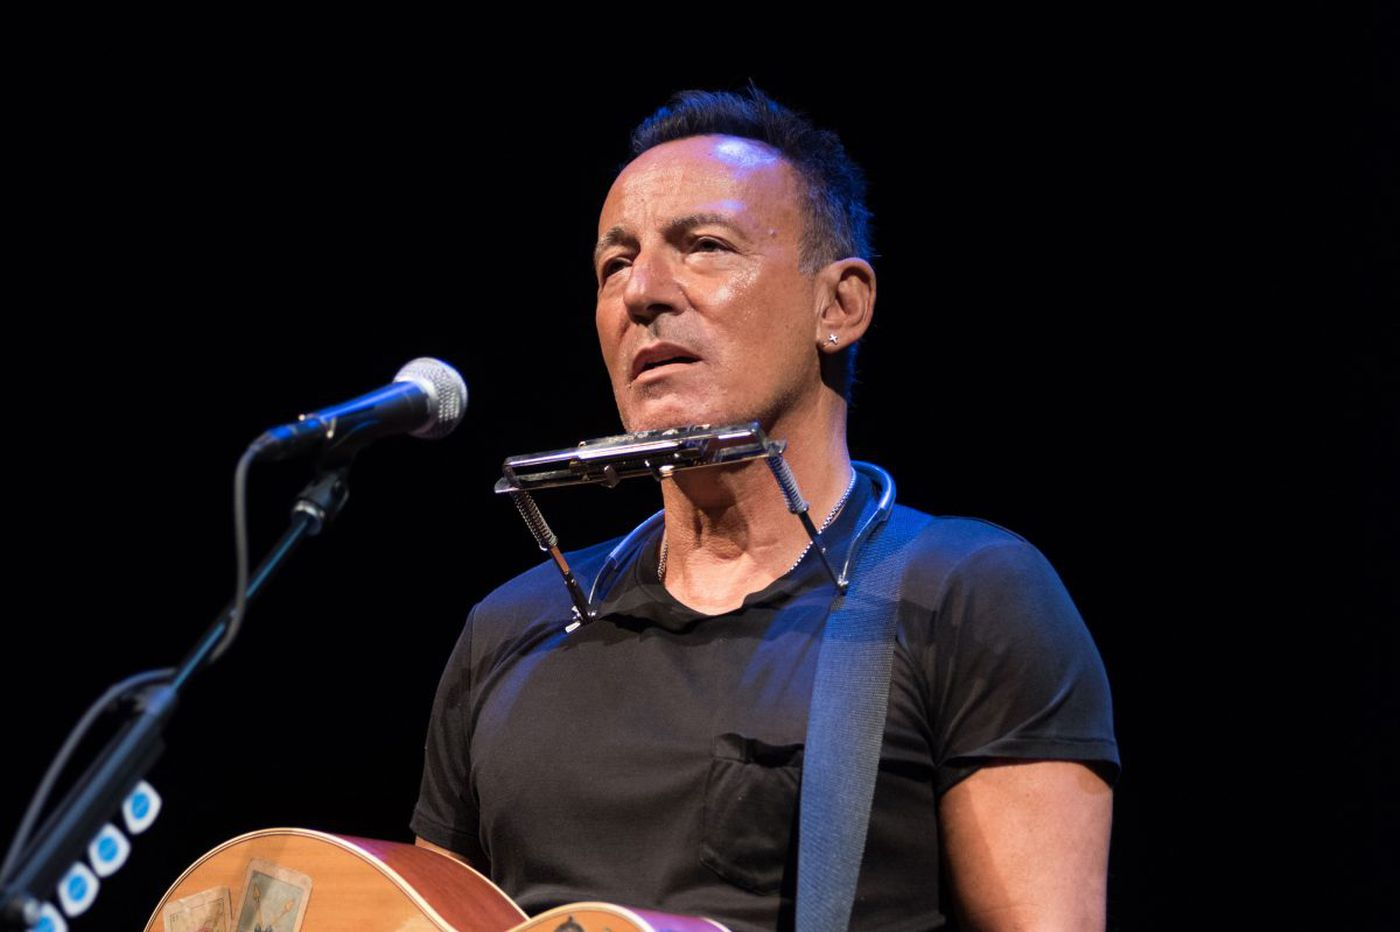 'Springsteen on Broadway': The Boss as you've never seen him before